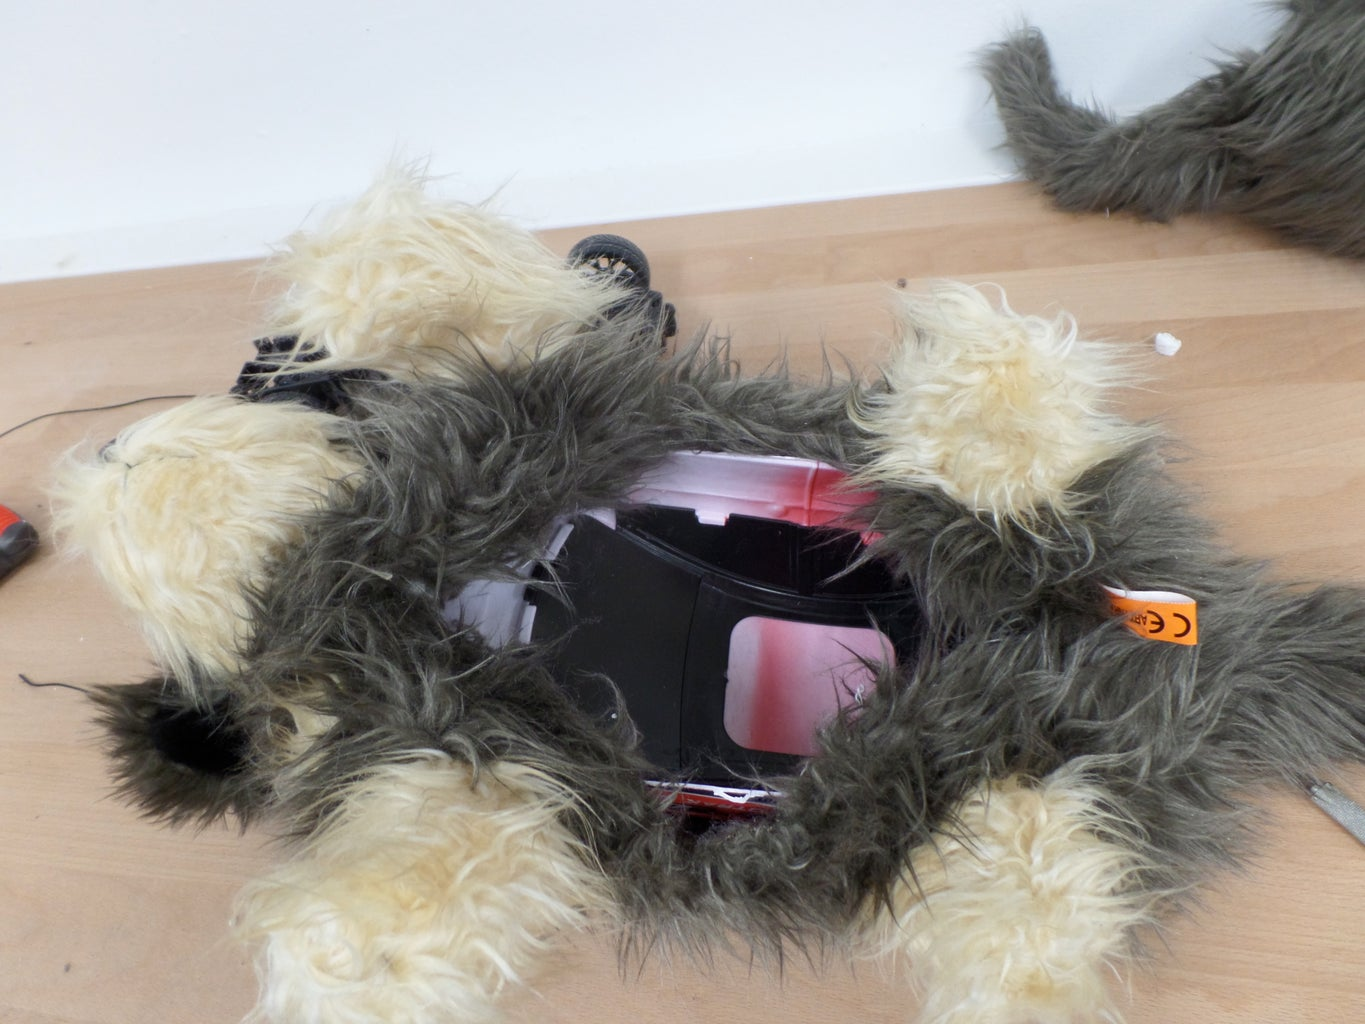 The Starting Point: Stuffed Dog, Cheap RC Car and Voided Warranties